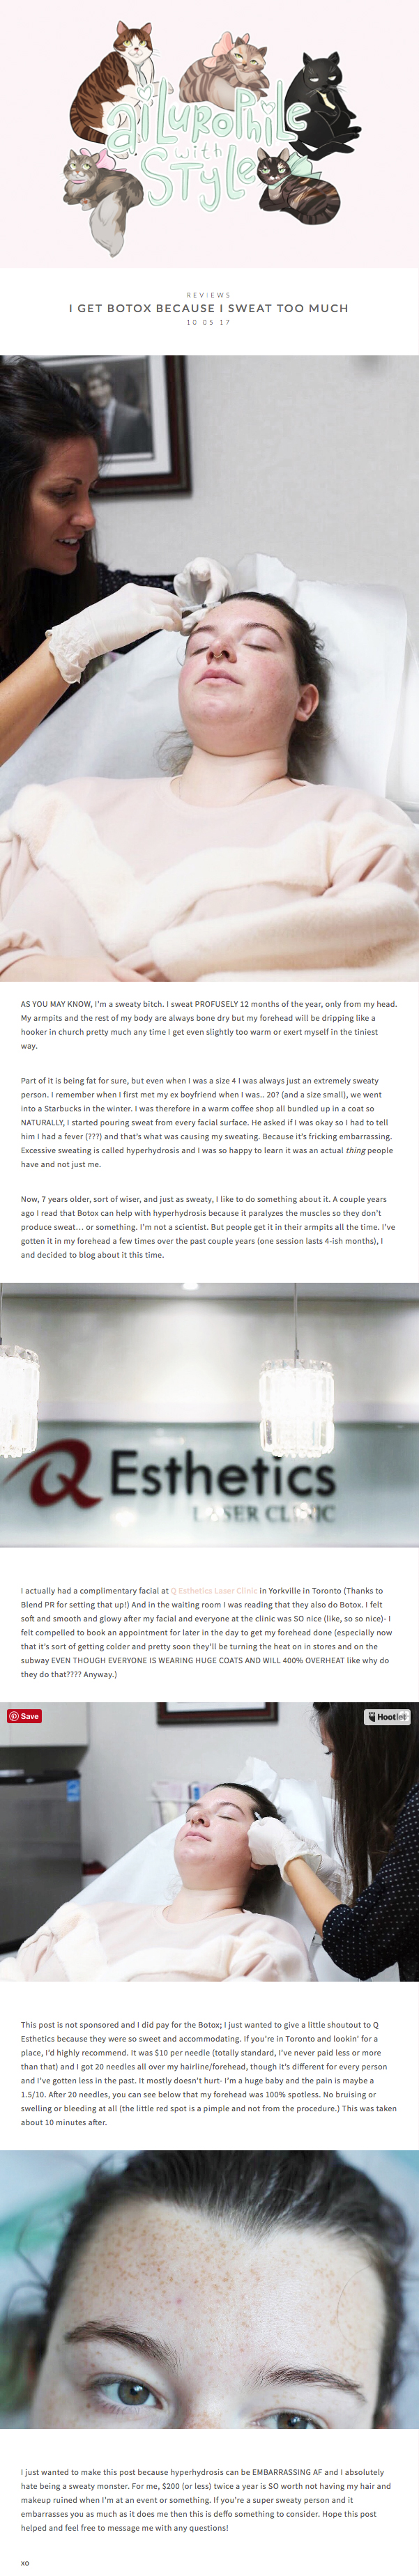 Q Esthetics featured on Ailurophile with Style. www.ailurophilewithstyle.com